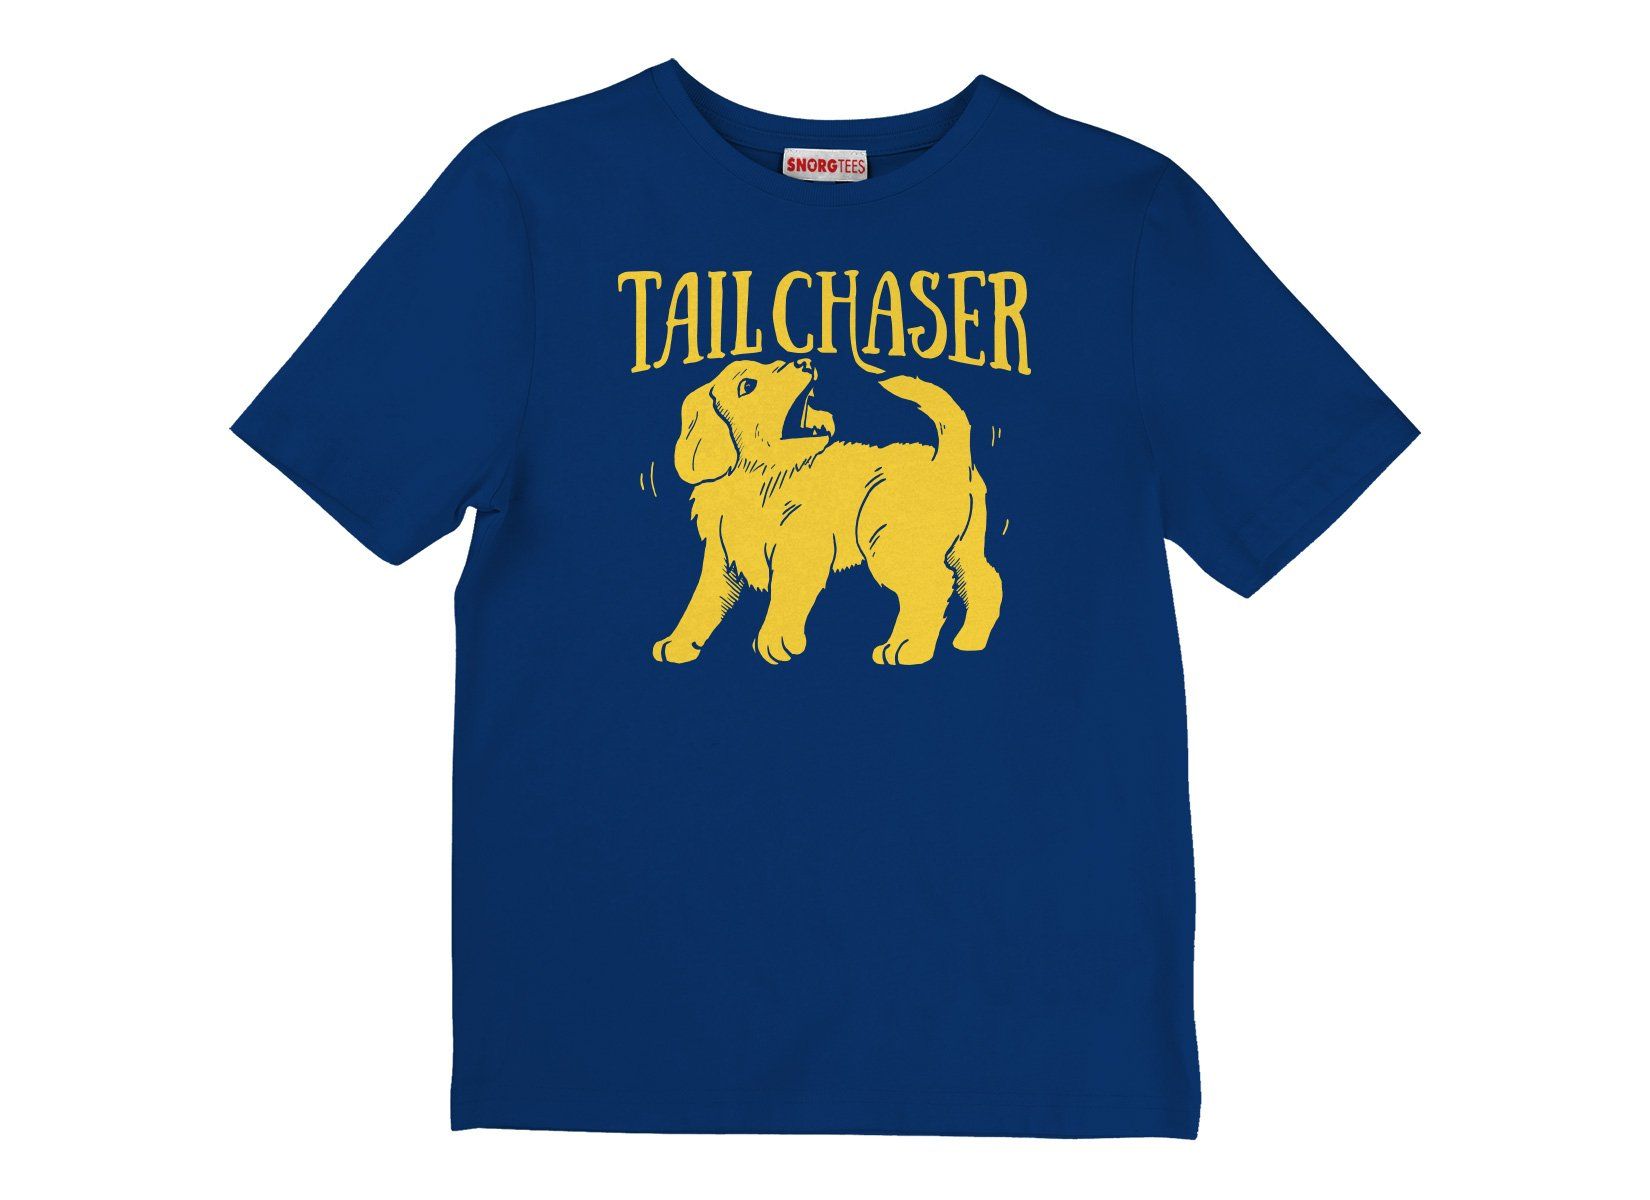 Tail Chaser on Kids T-Shirt